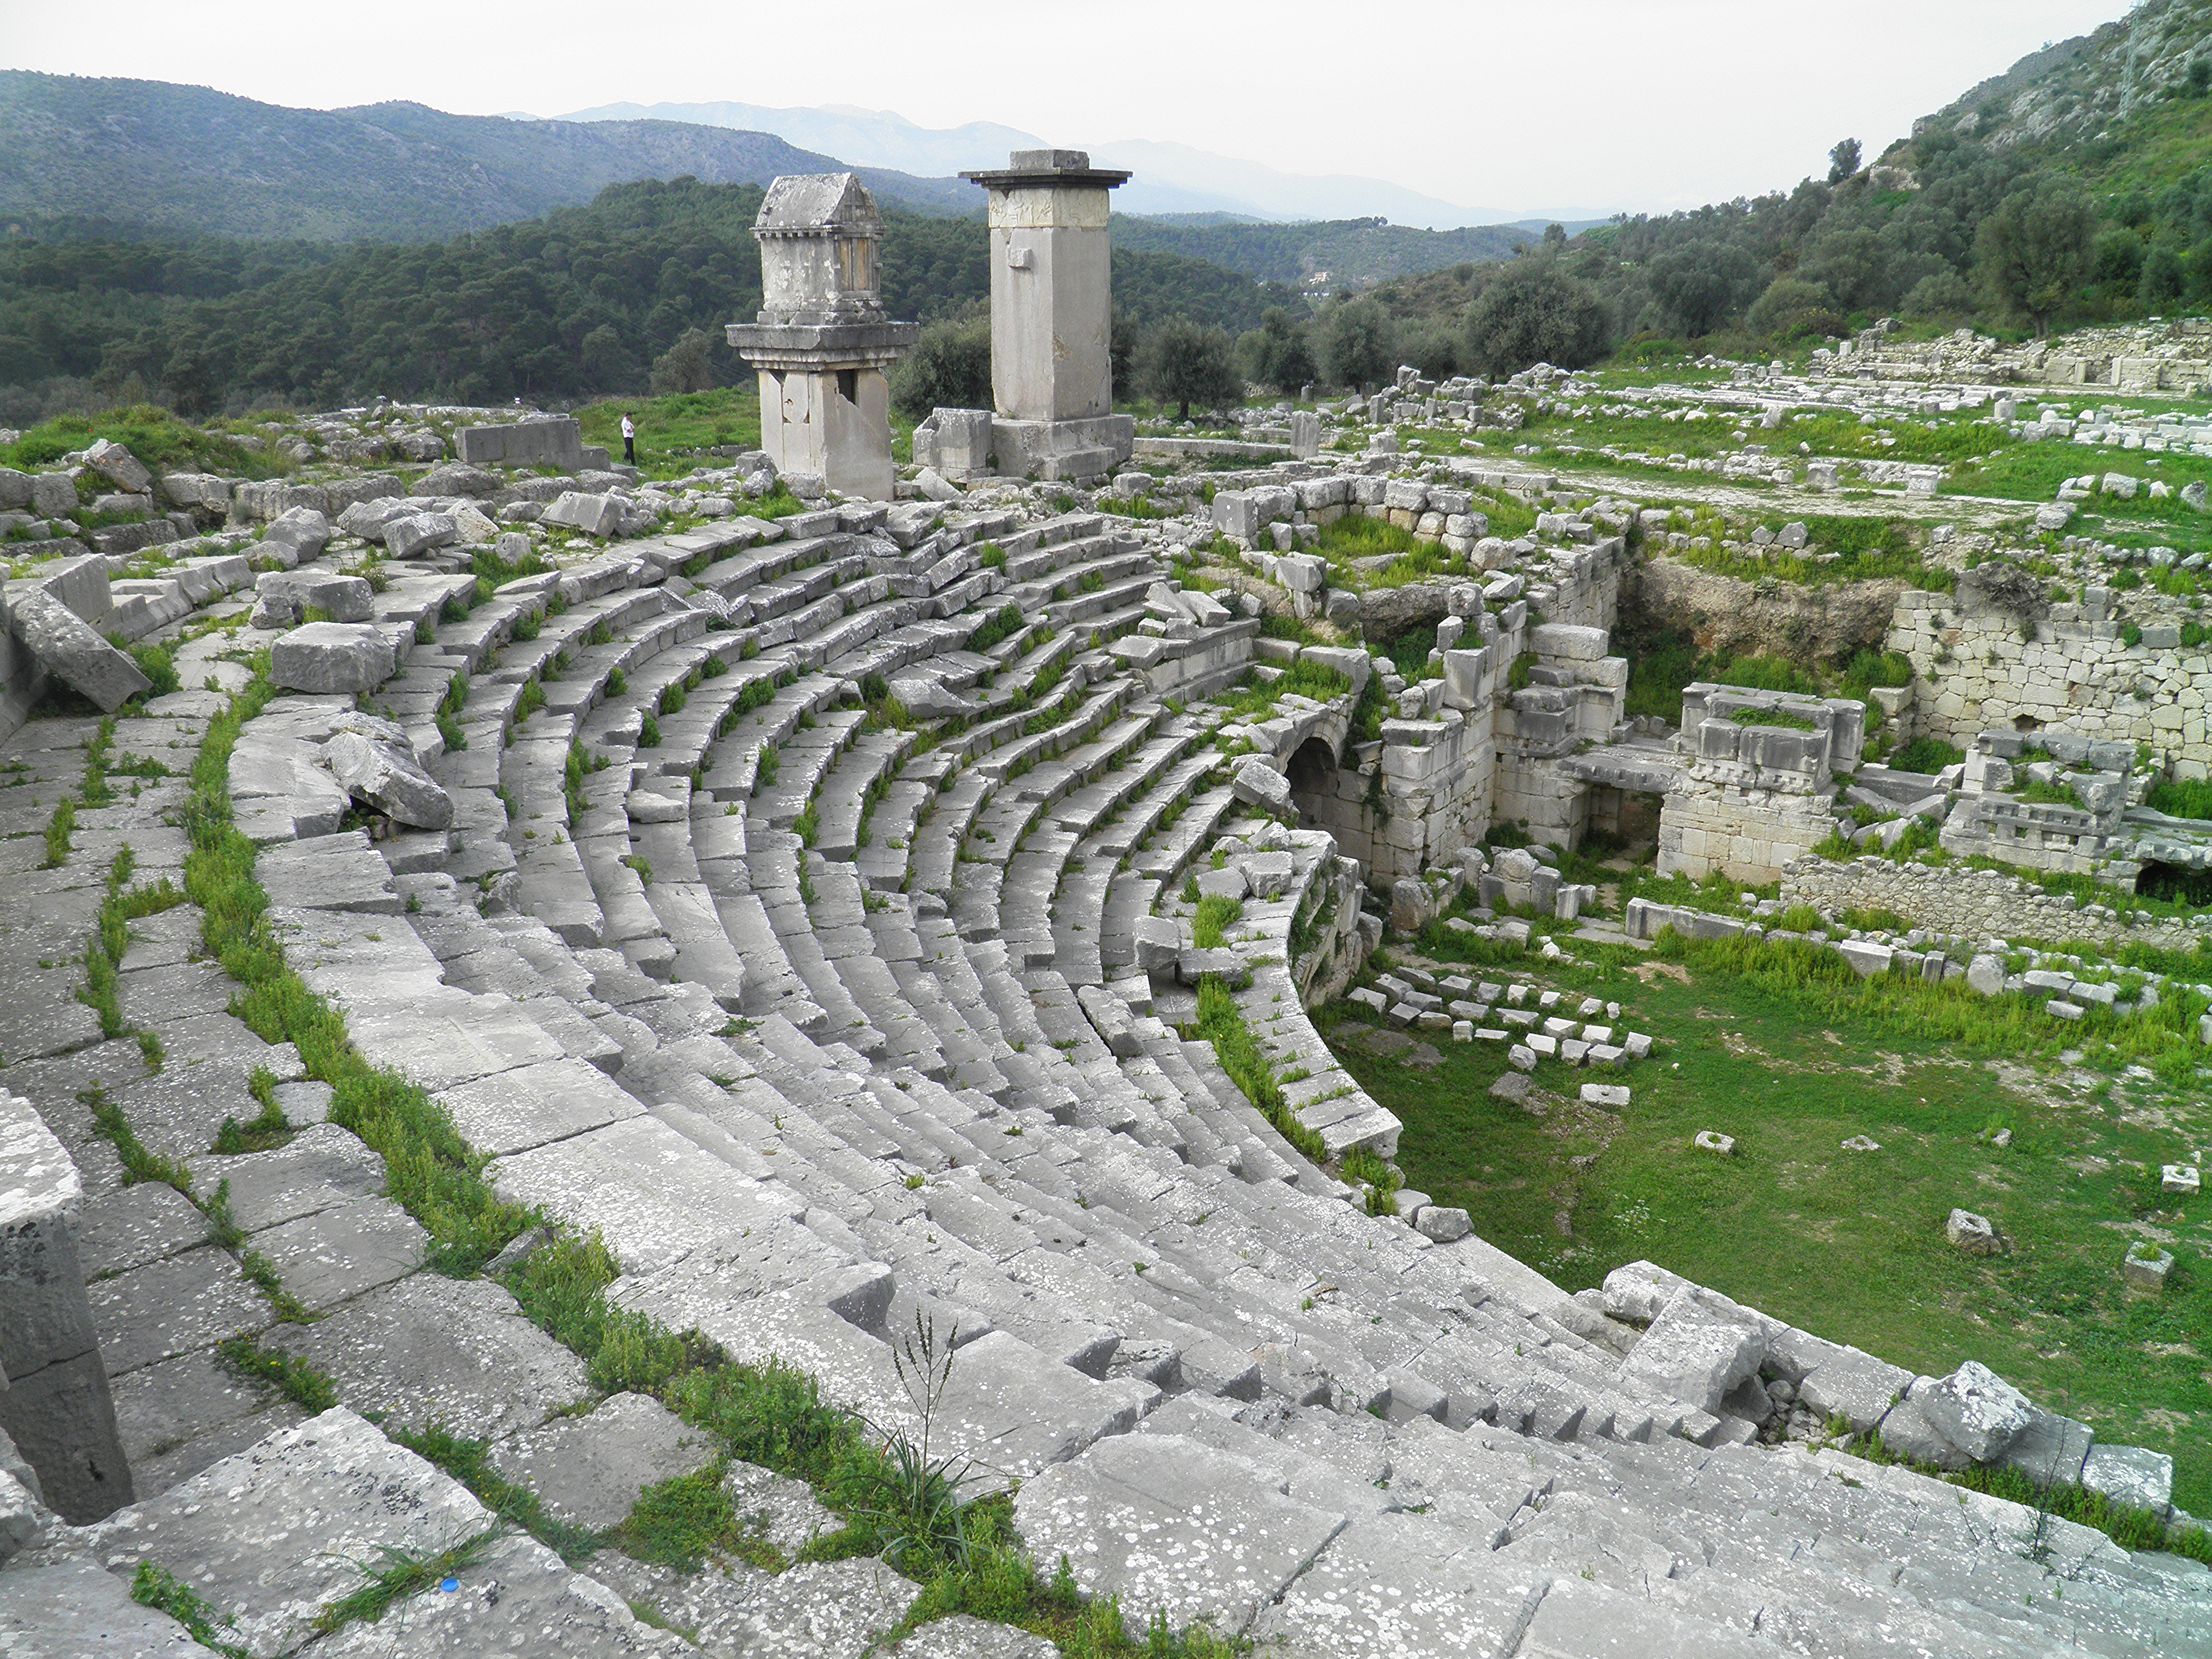 File:The Roman theatre and monumental Lycian tombs, Xanthos, Lycia, Turkey (8...